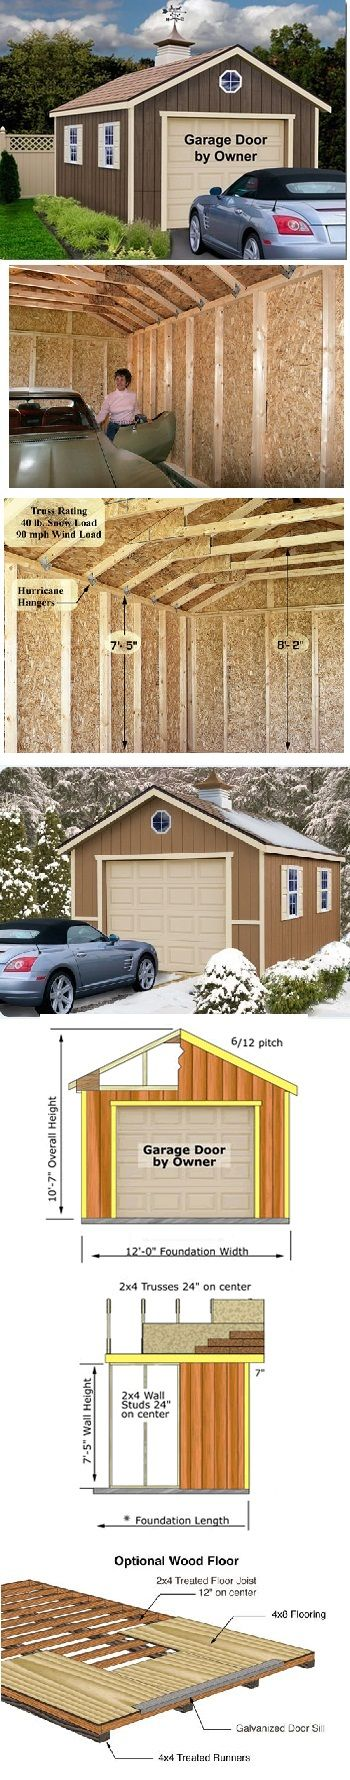 Sierra 12'x24' Ezup Best Barn Wood Garage Kit